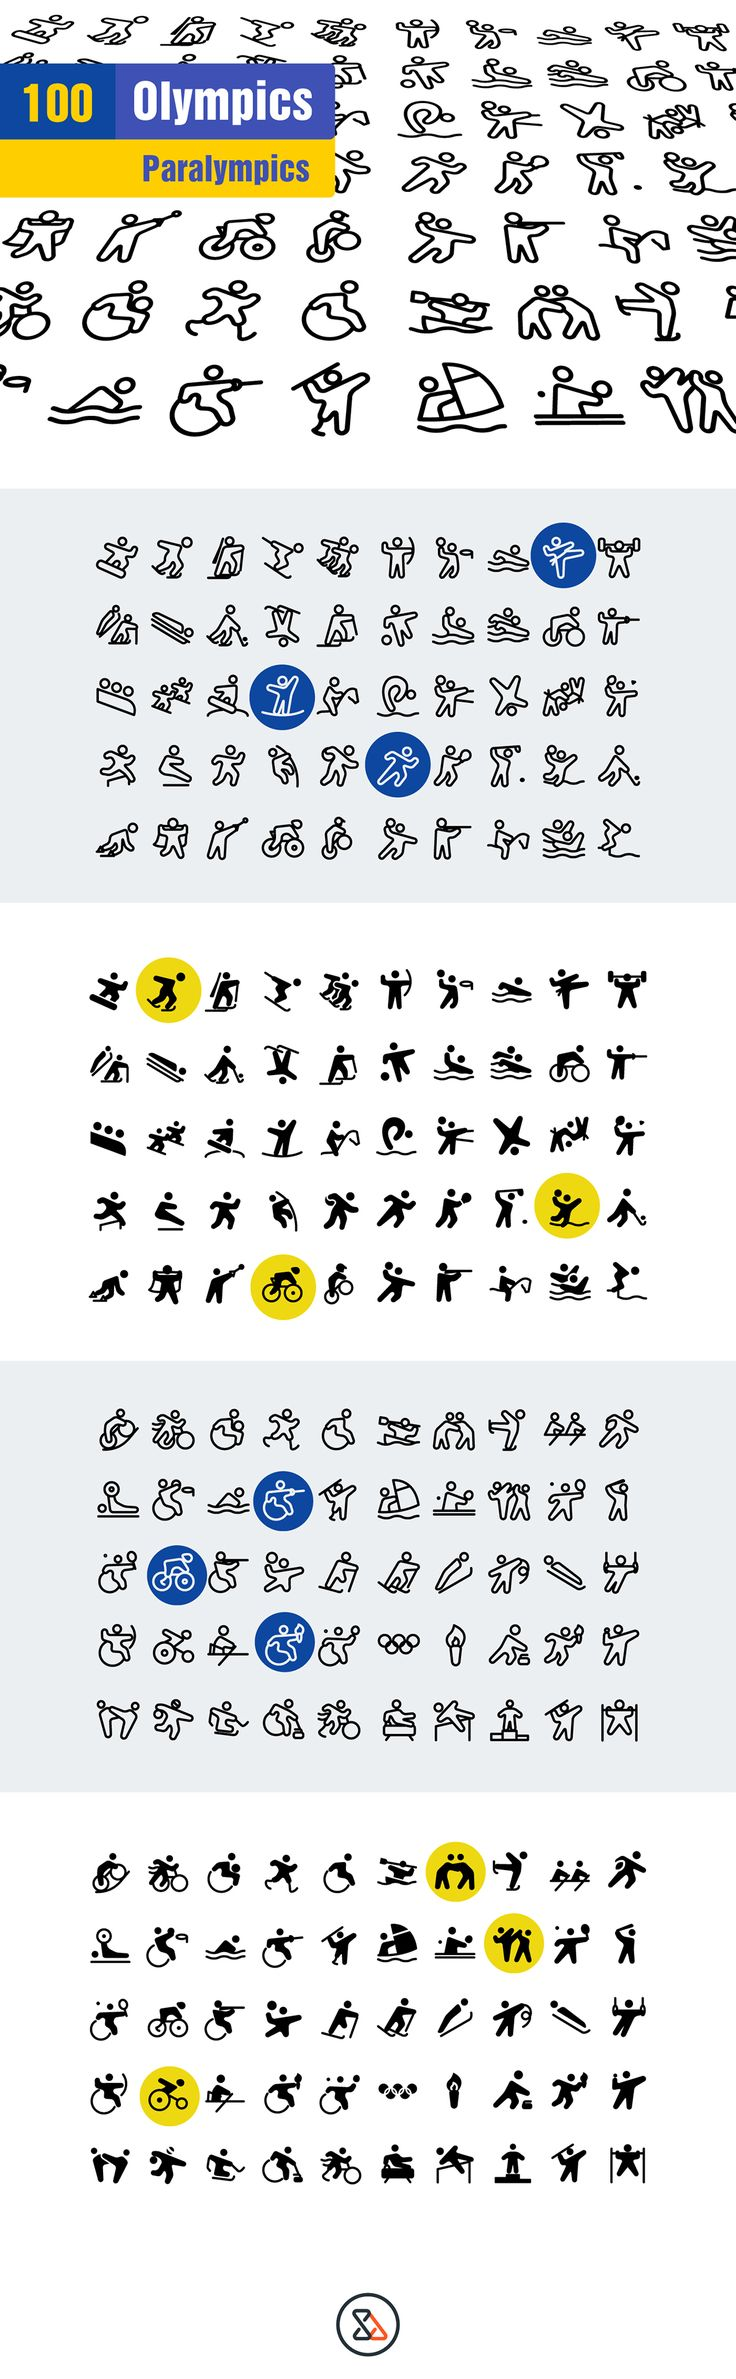 Olympics Icons on Behance #olympic #paralympics #sports #athlete #fitness #icon #icondesign #illustration #pictogram #glyph bicycle, runner, disable, wheelchair, medal, web, webdesign, hockey, ski, game, sports, sport,